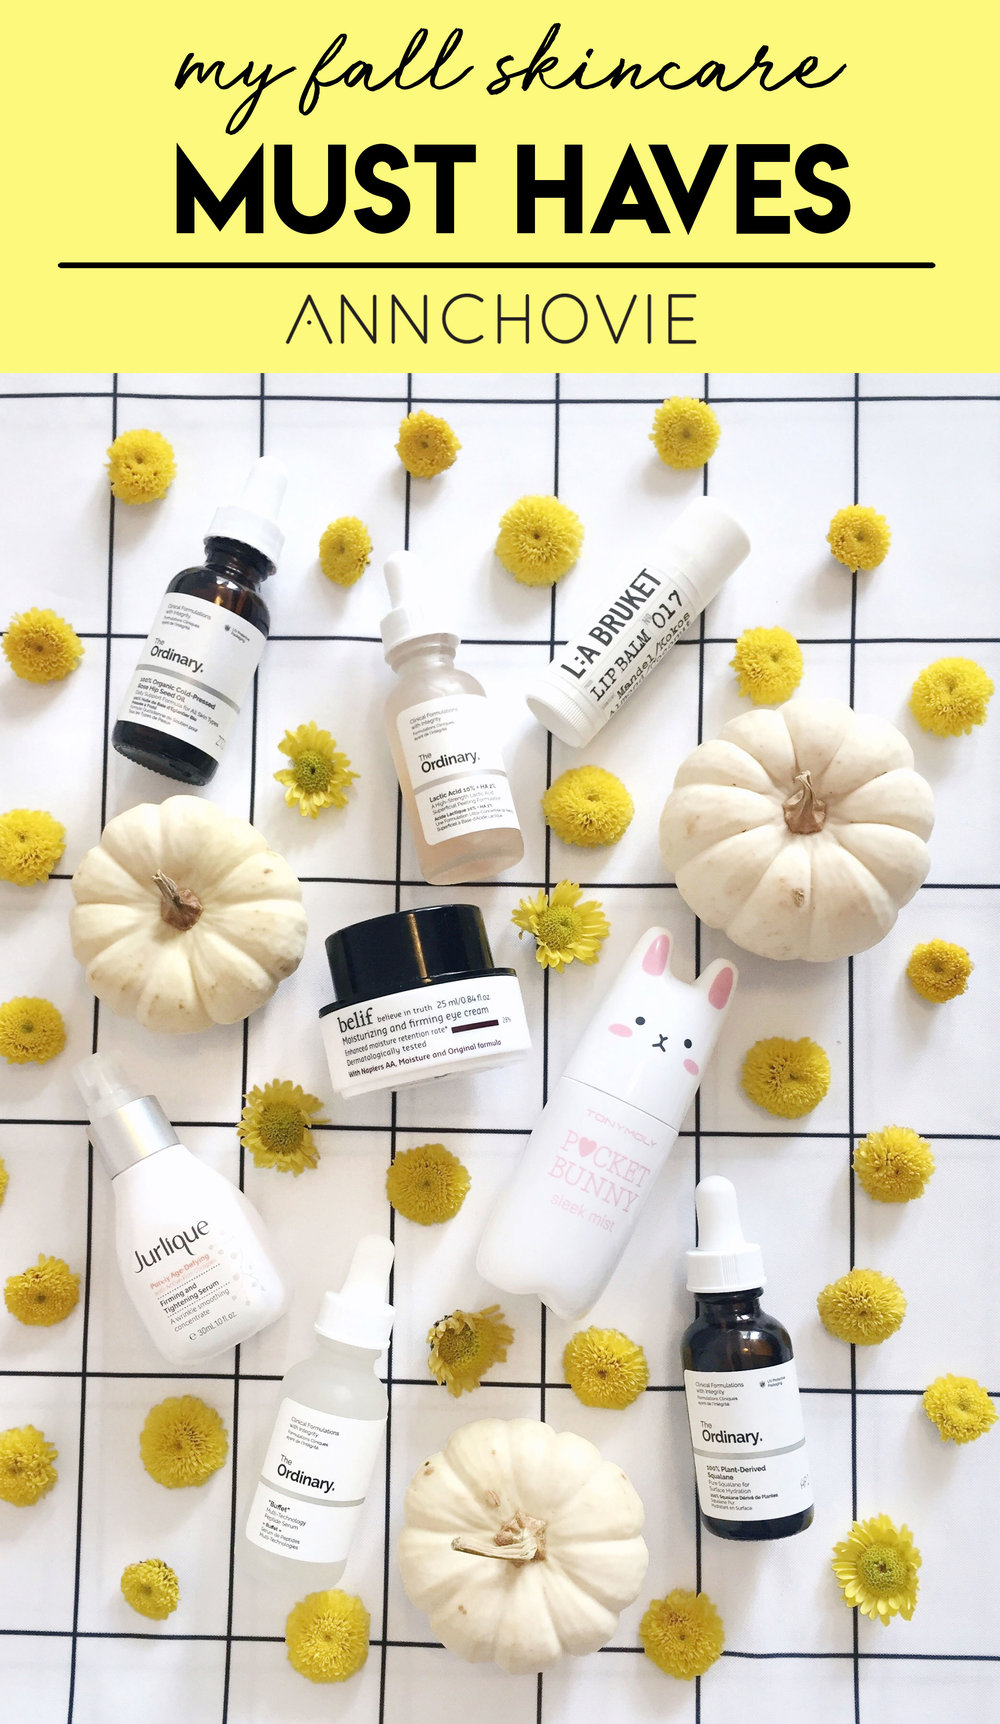 My Fall Skincare Must Haves